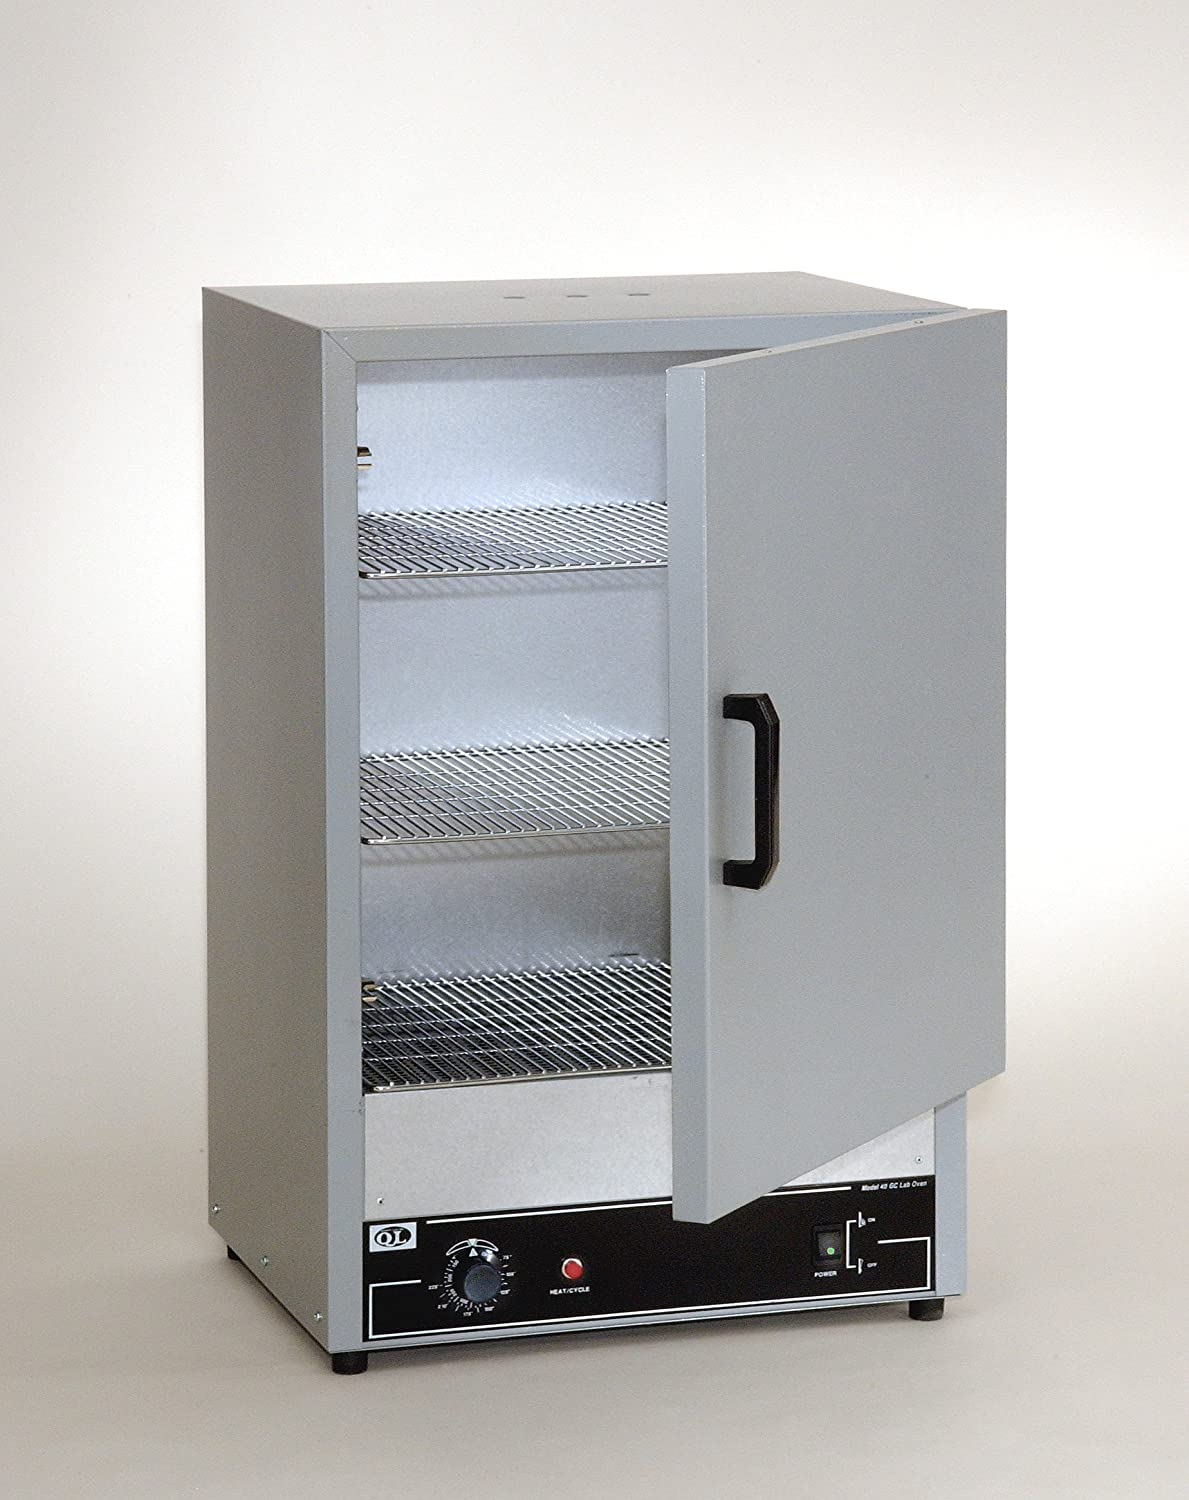 Quincy Lab 40GCE-LT Steel Gravity Convection Oven 3.0 cubic feet Digital Low Temperature